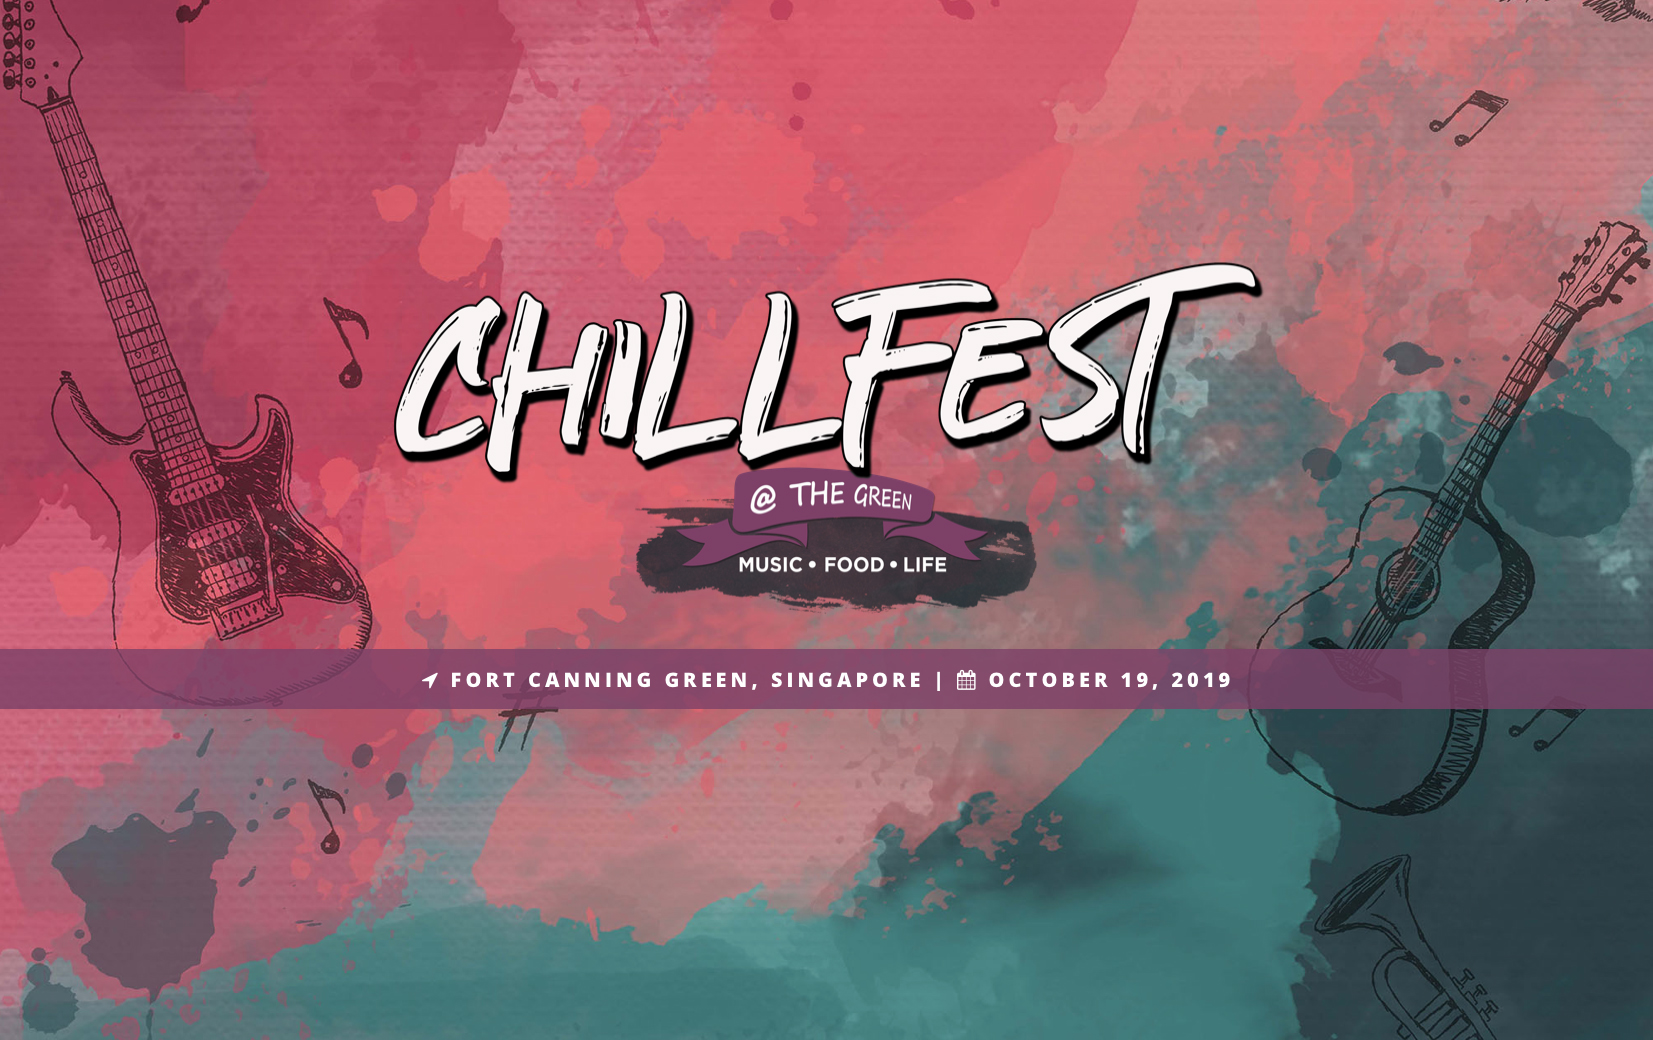 <div>Eco music festival ChillFest@The Green cancelled 10 days ahead of event</div>